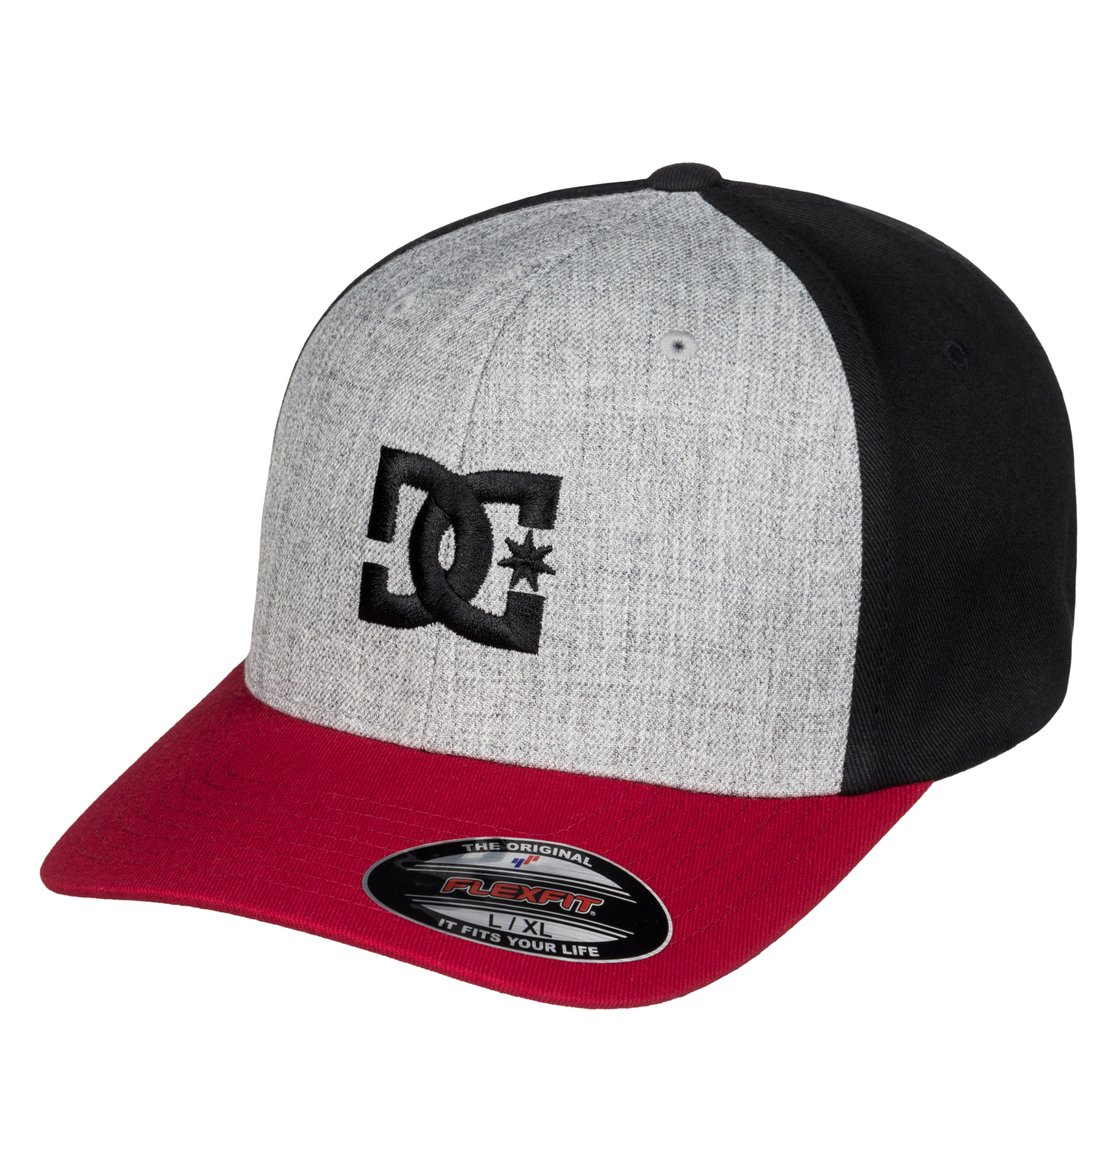 Browse the full collection of mens hats at the official online store of DC Shoes, the industry leader since Free shipping every day.